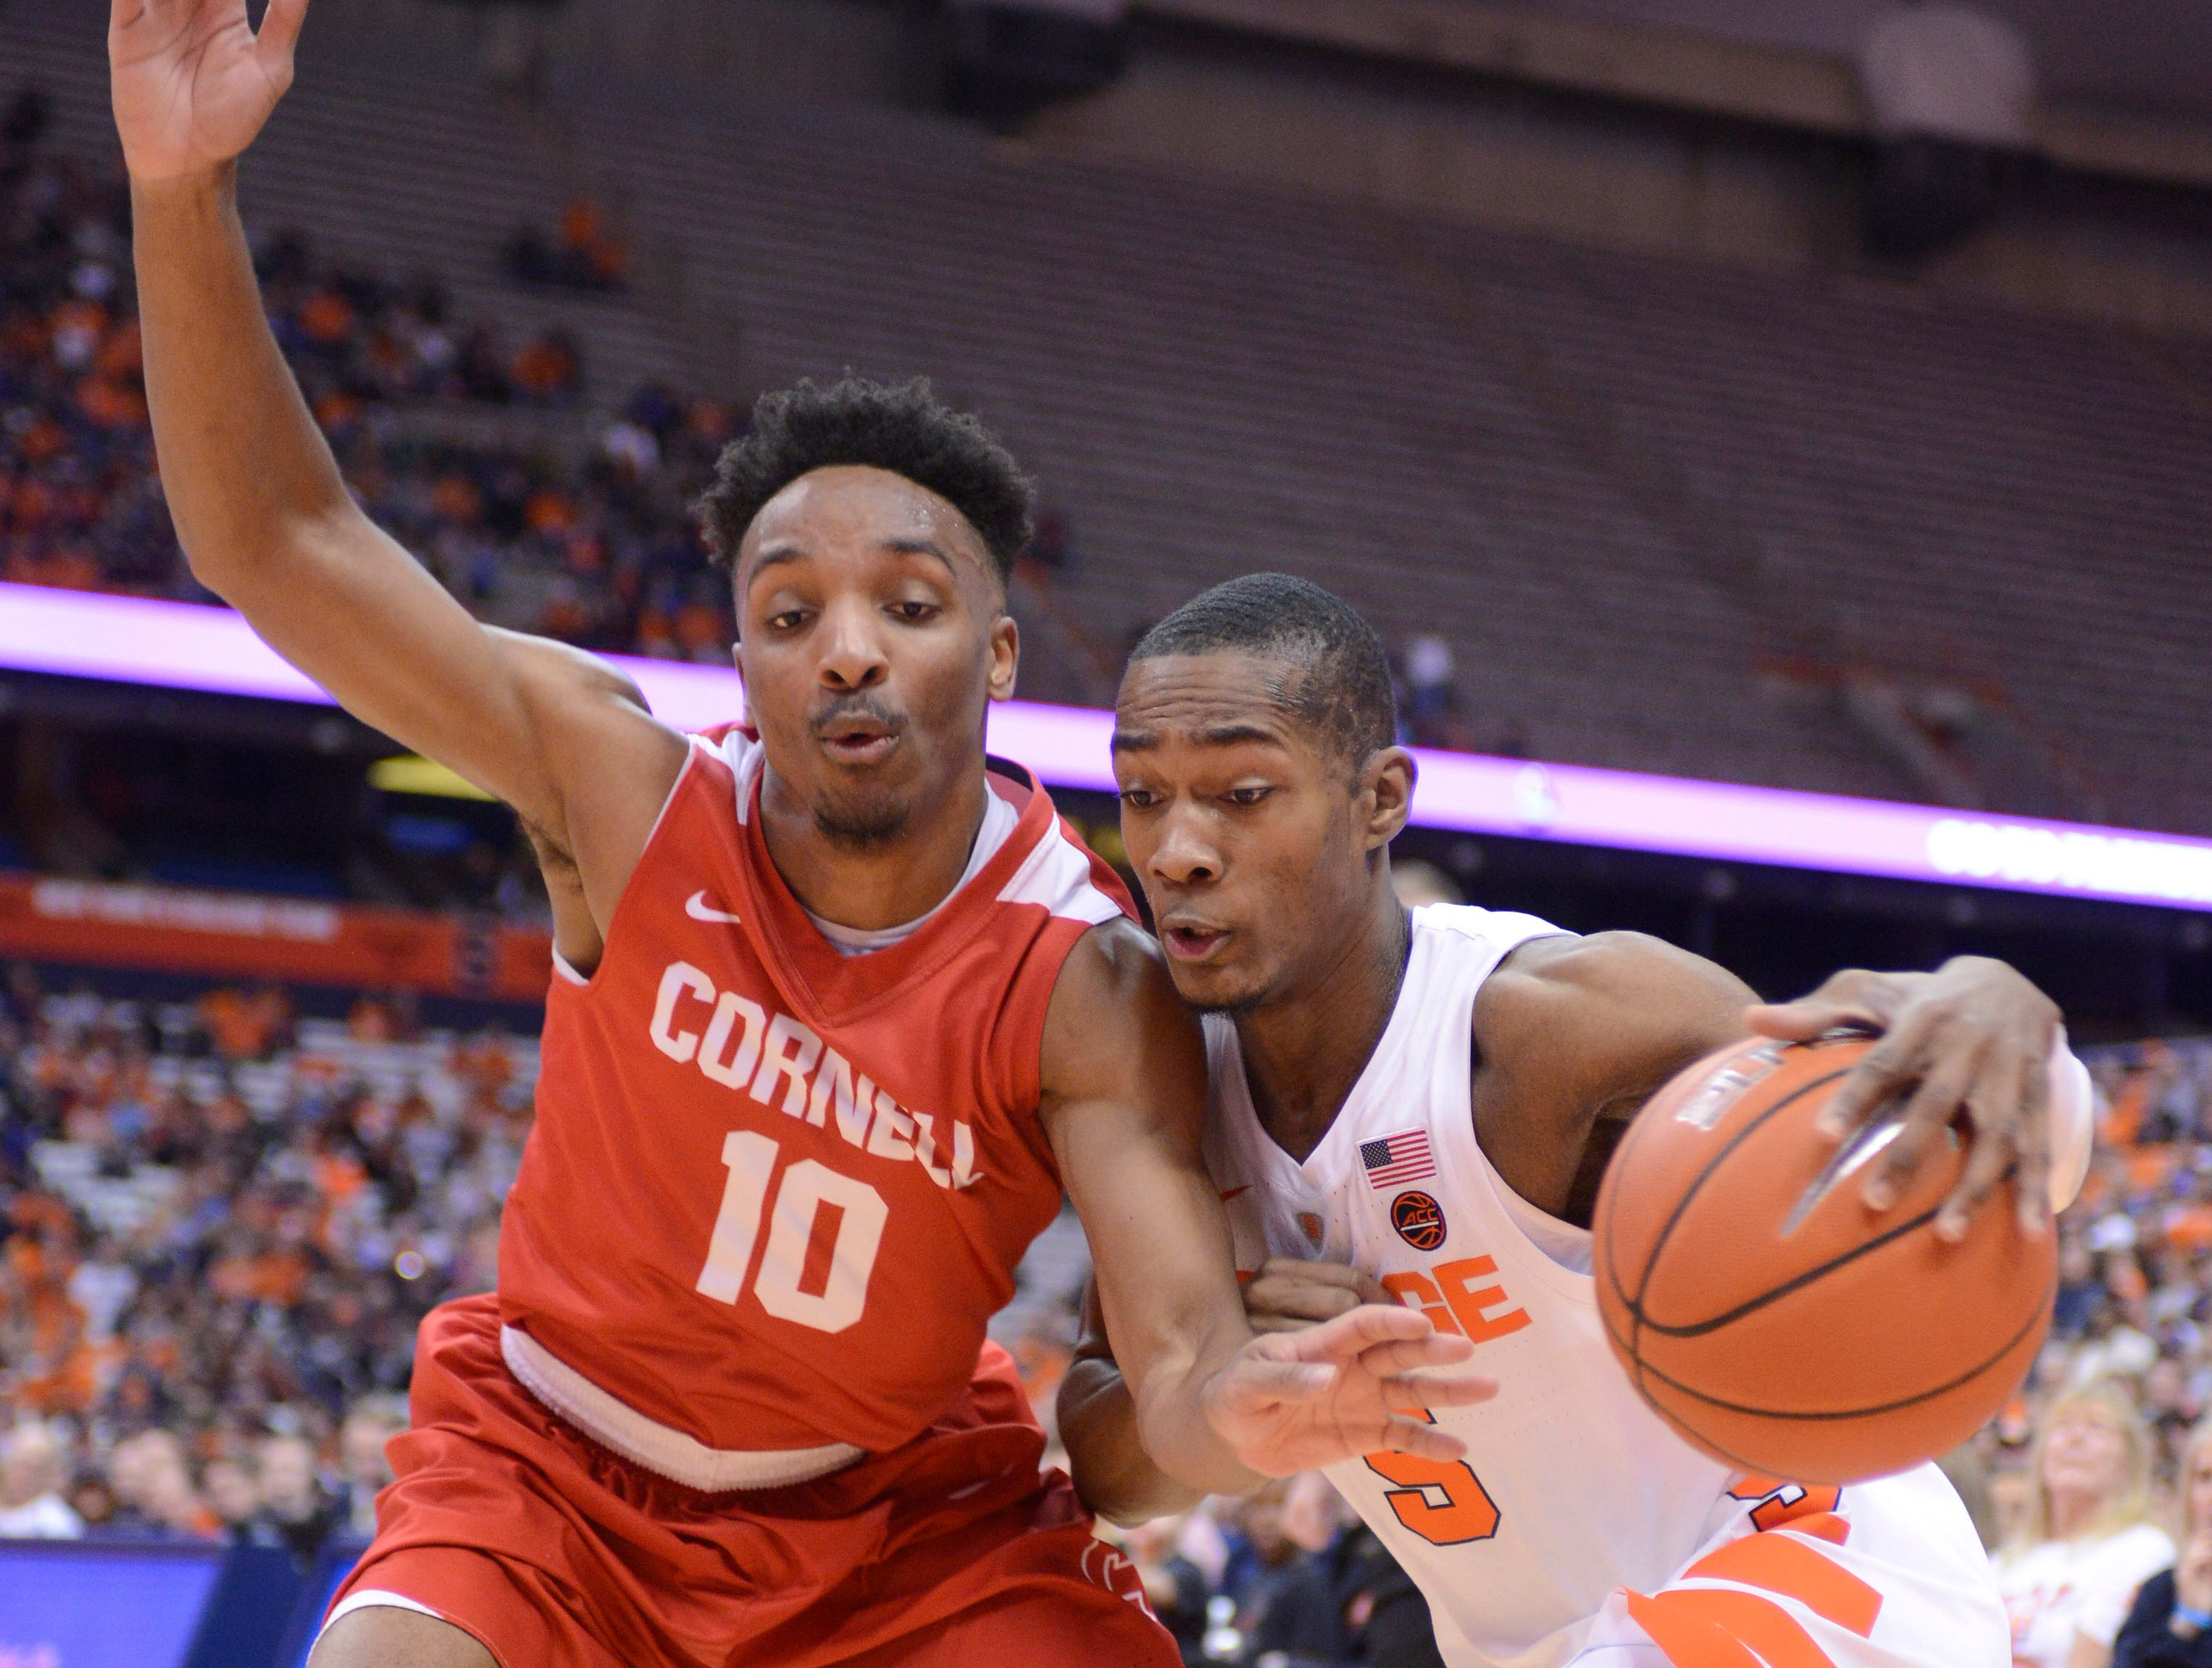 ]Dec 1, 2018; Syracuse, NY, USA; Syracuse Orange guard Jalen Carey (5) tries to drive the ball past Cornell Big Red guard Matt Morgan (10) during the second half at the Carrier Dome. Mandatory Credit: Mark Konezny-USA TODAY Sports